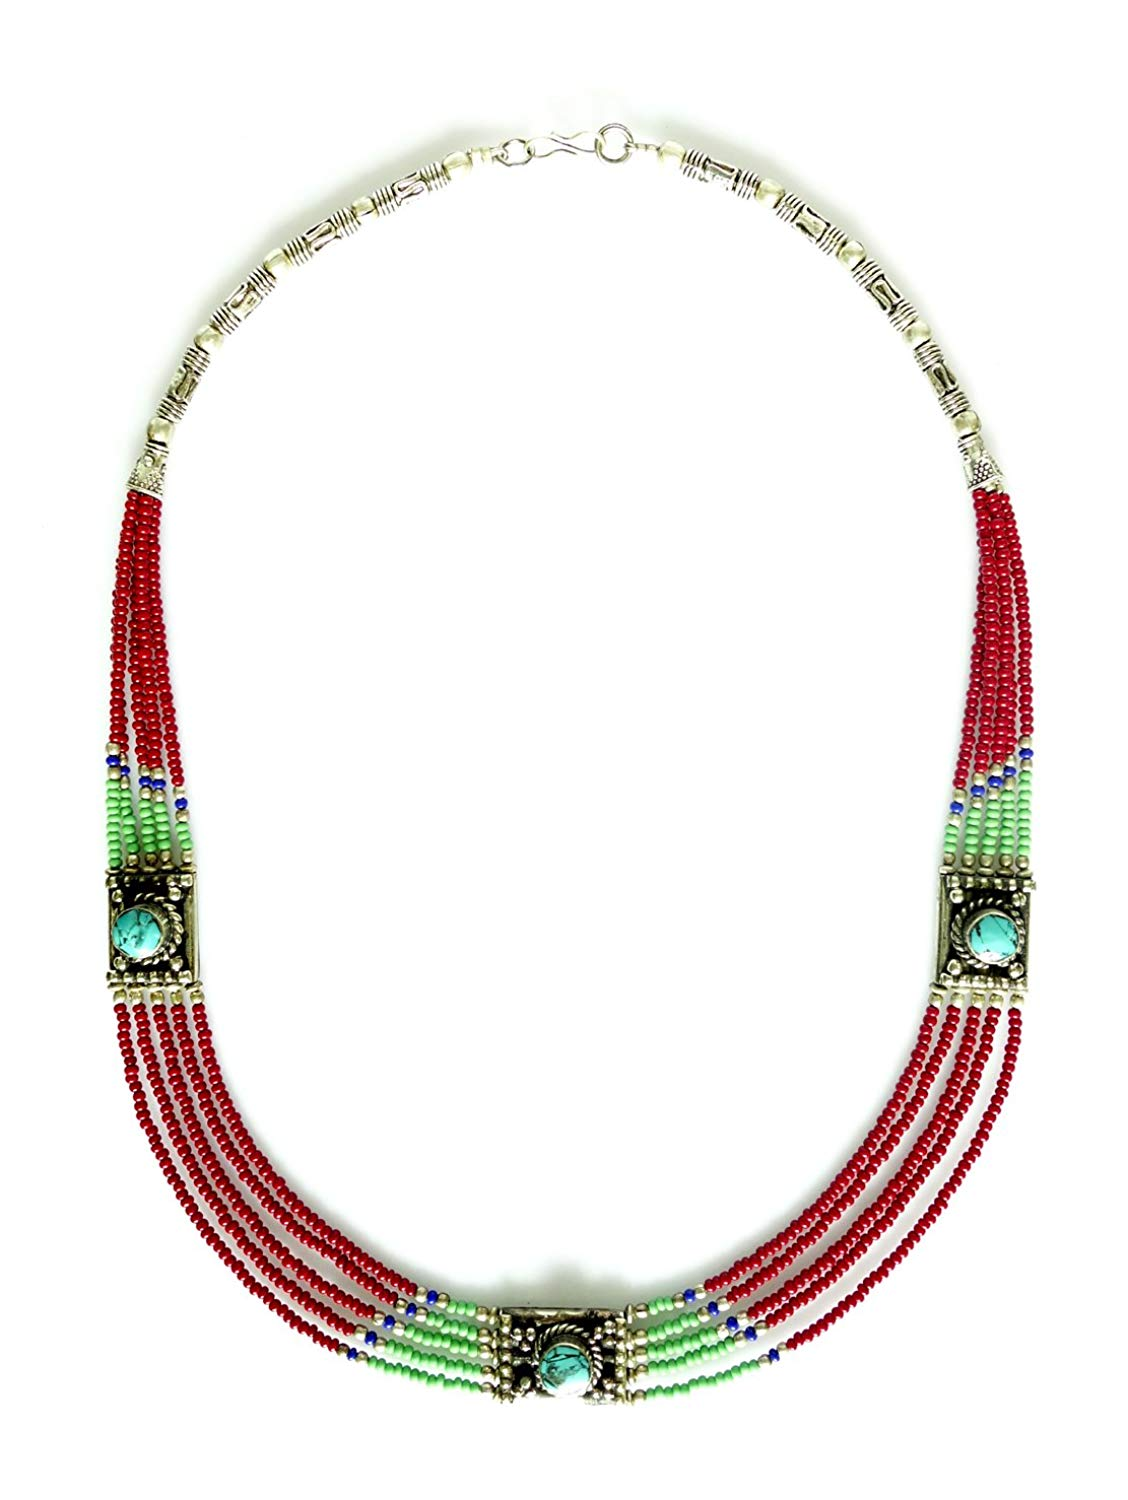 Tibetan Silver FABULOUS RED RUBY AND TURQUOISE DESIGNER COLLAR NECKLACE FOR WOMAN OXIDIZED silver-plated-base ETHNIC MULTI STRAND TRIBAL BUDDHIST BOHEMIAN COLLAR NECKLACE